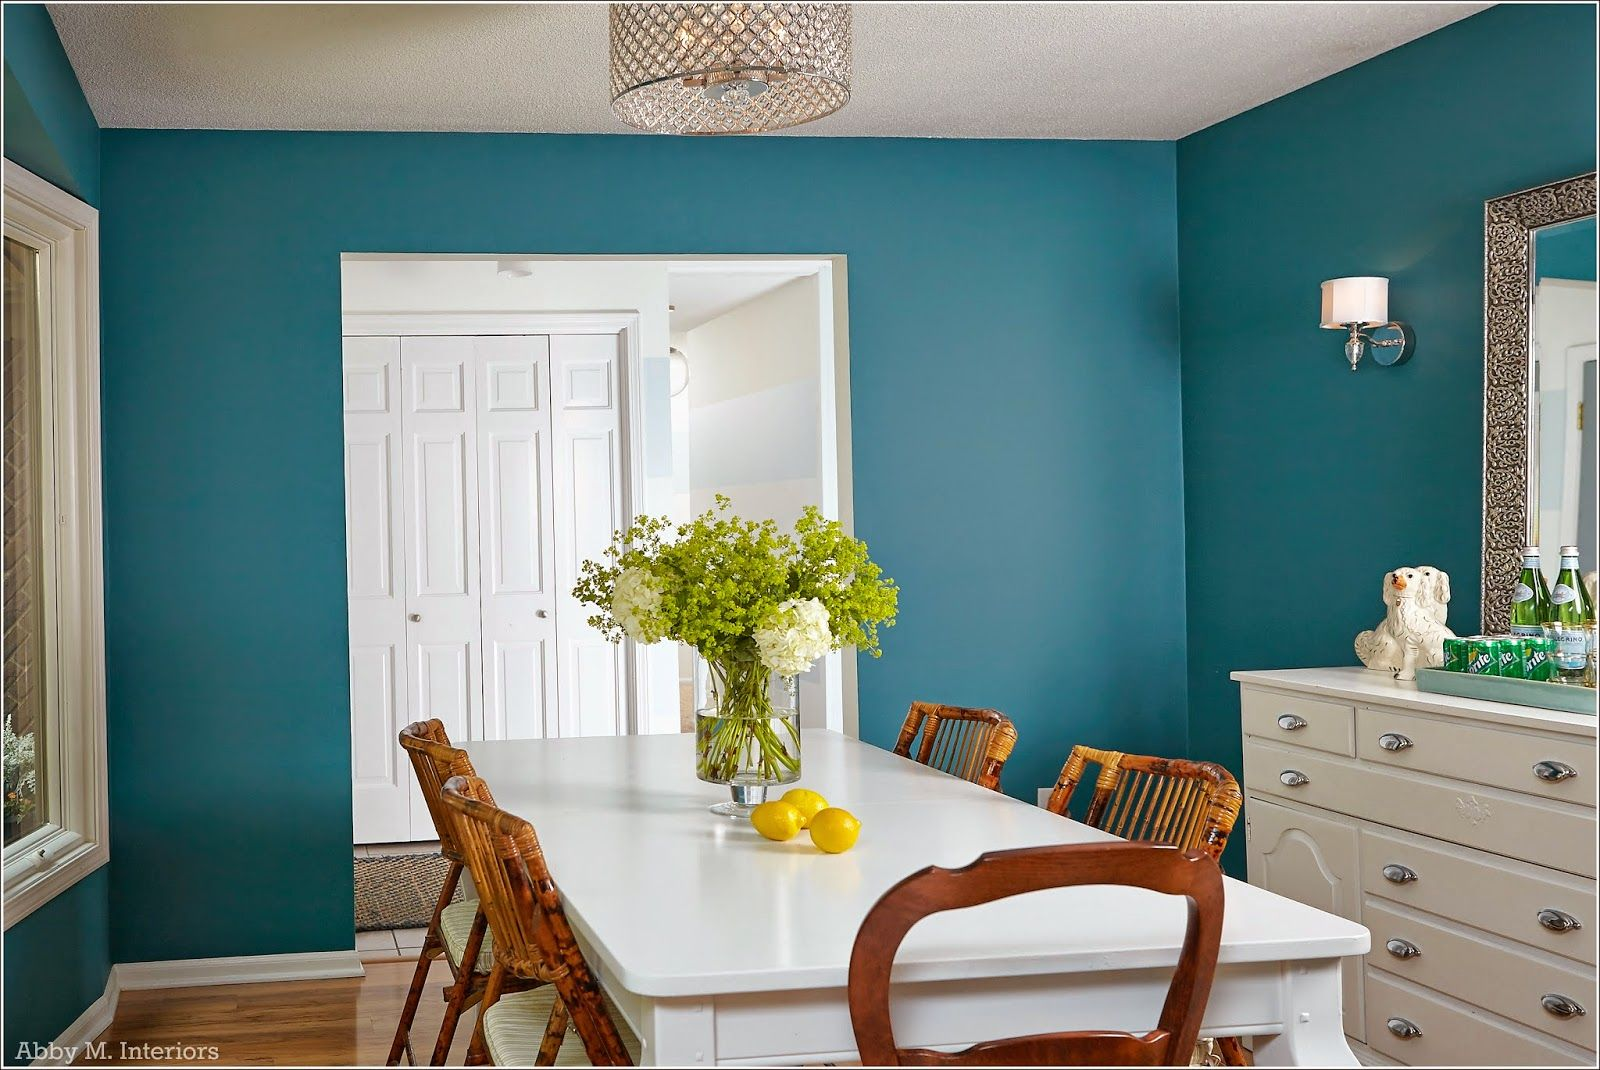 Abby M Interiors Dining Room Blue Dining Room Teal Turquoise Dining Room #turquoise #living #room #walls